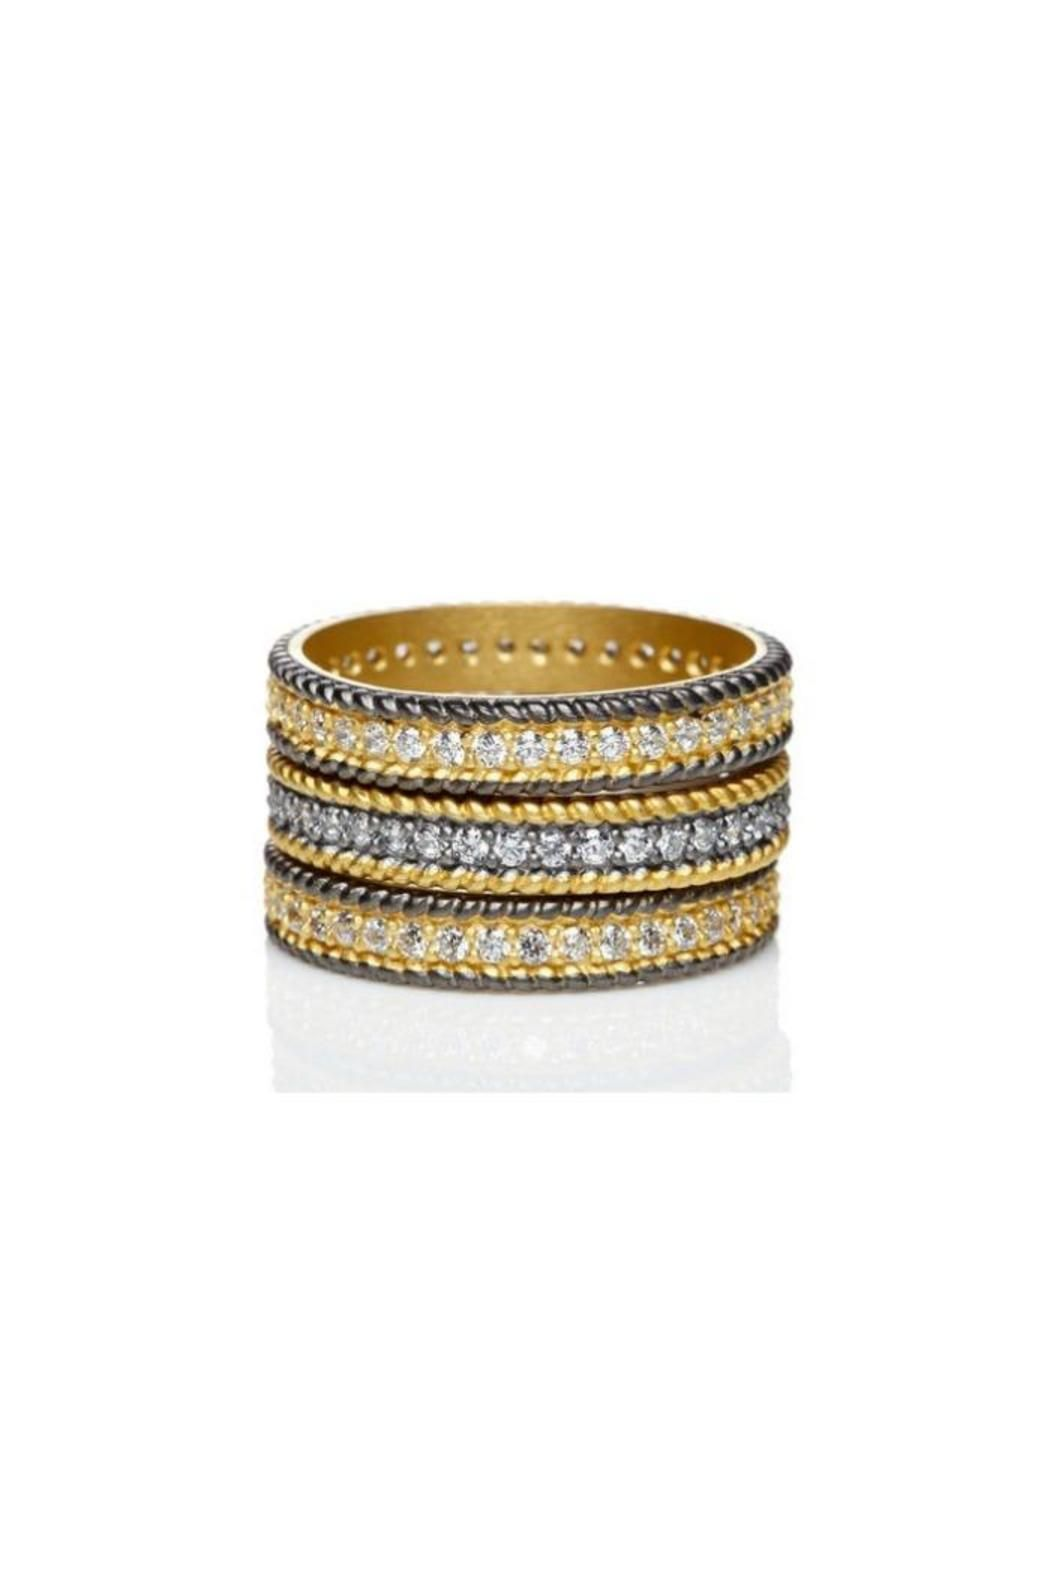 3 separate stackable Sterling Silver with 14k yellow gold and black Ruthenium.Each ring is set with hand-cut white cubic zirconias that wrap around the entire band. Since each ring is separate the possibilities are endless!  Pave Eternity Stackers by Freida Rothman . Accessories - Jewelry - Rings New York